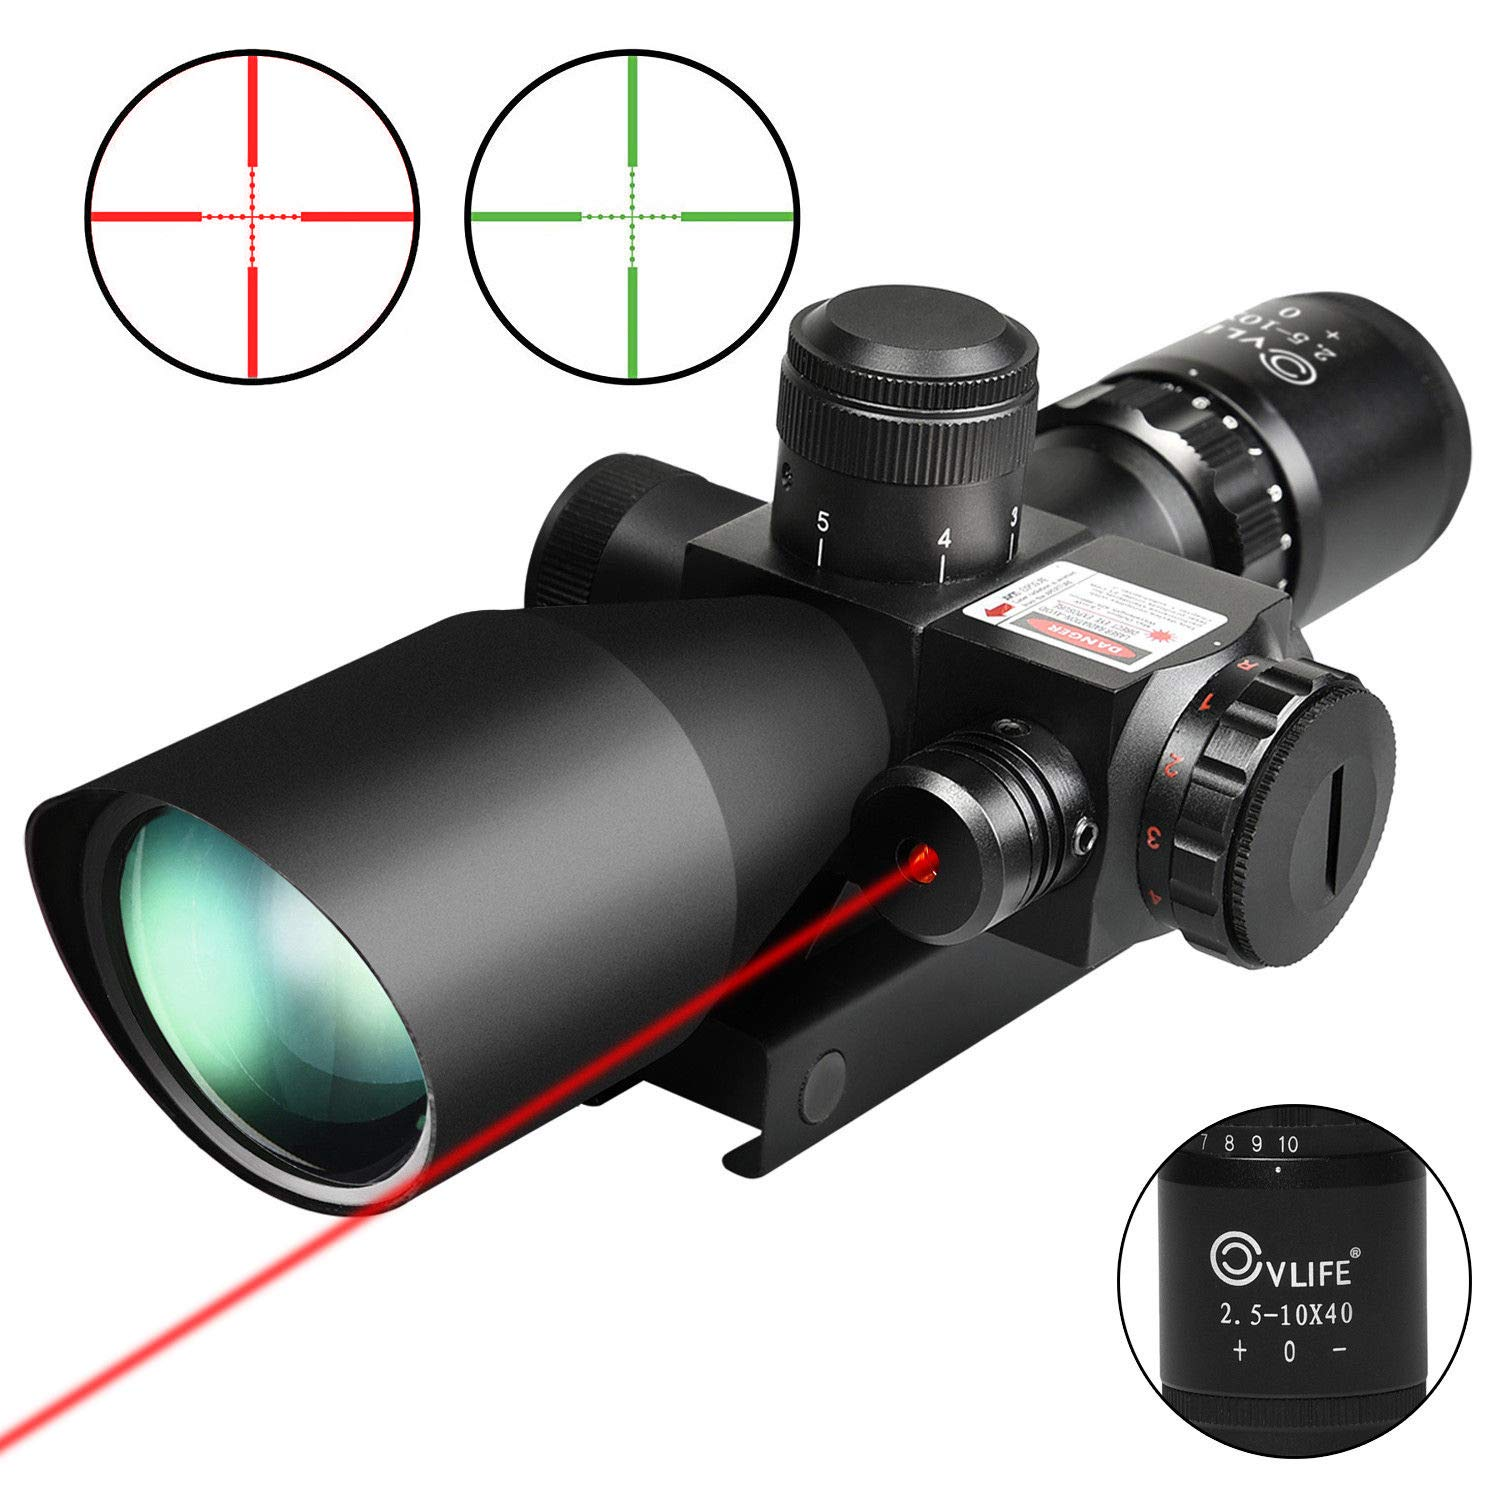 Top 6 Best Airgun Scope For The Money - Buyer's Guide 2